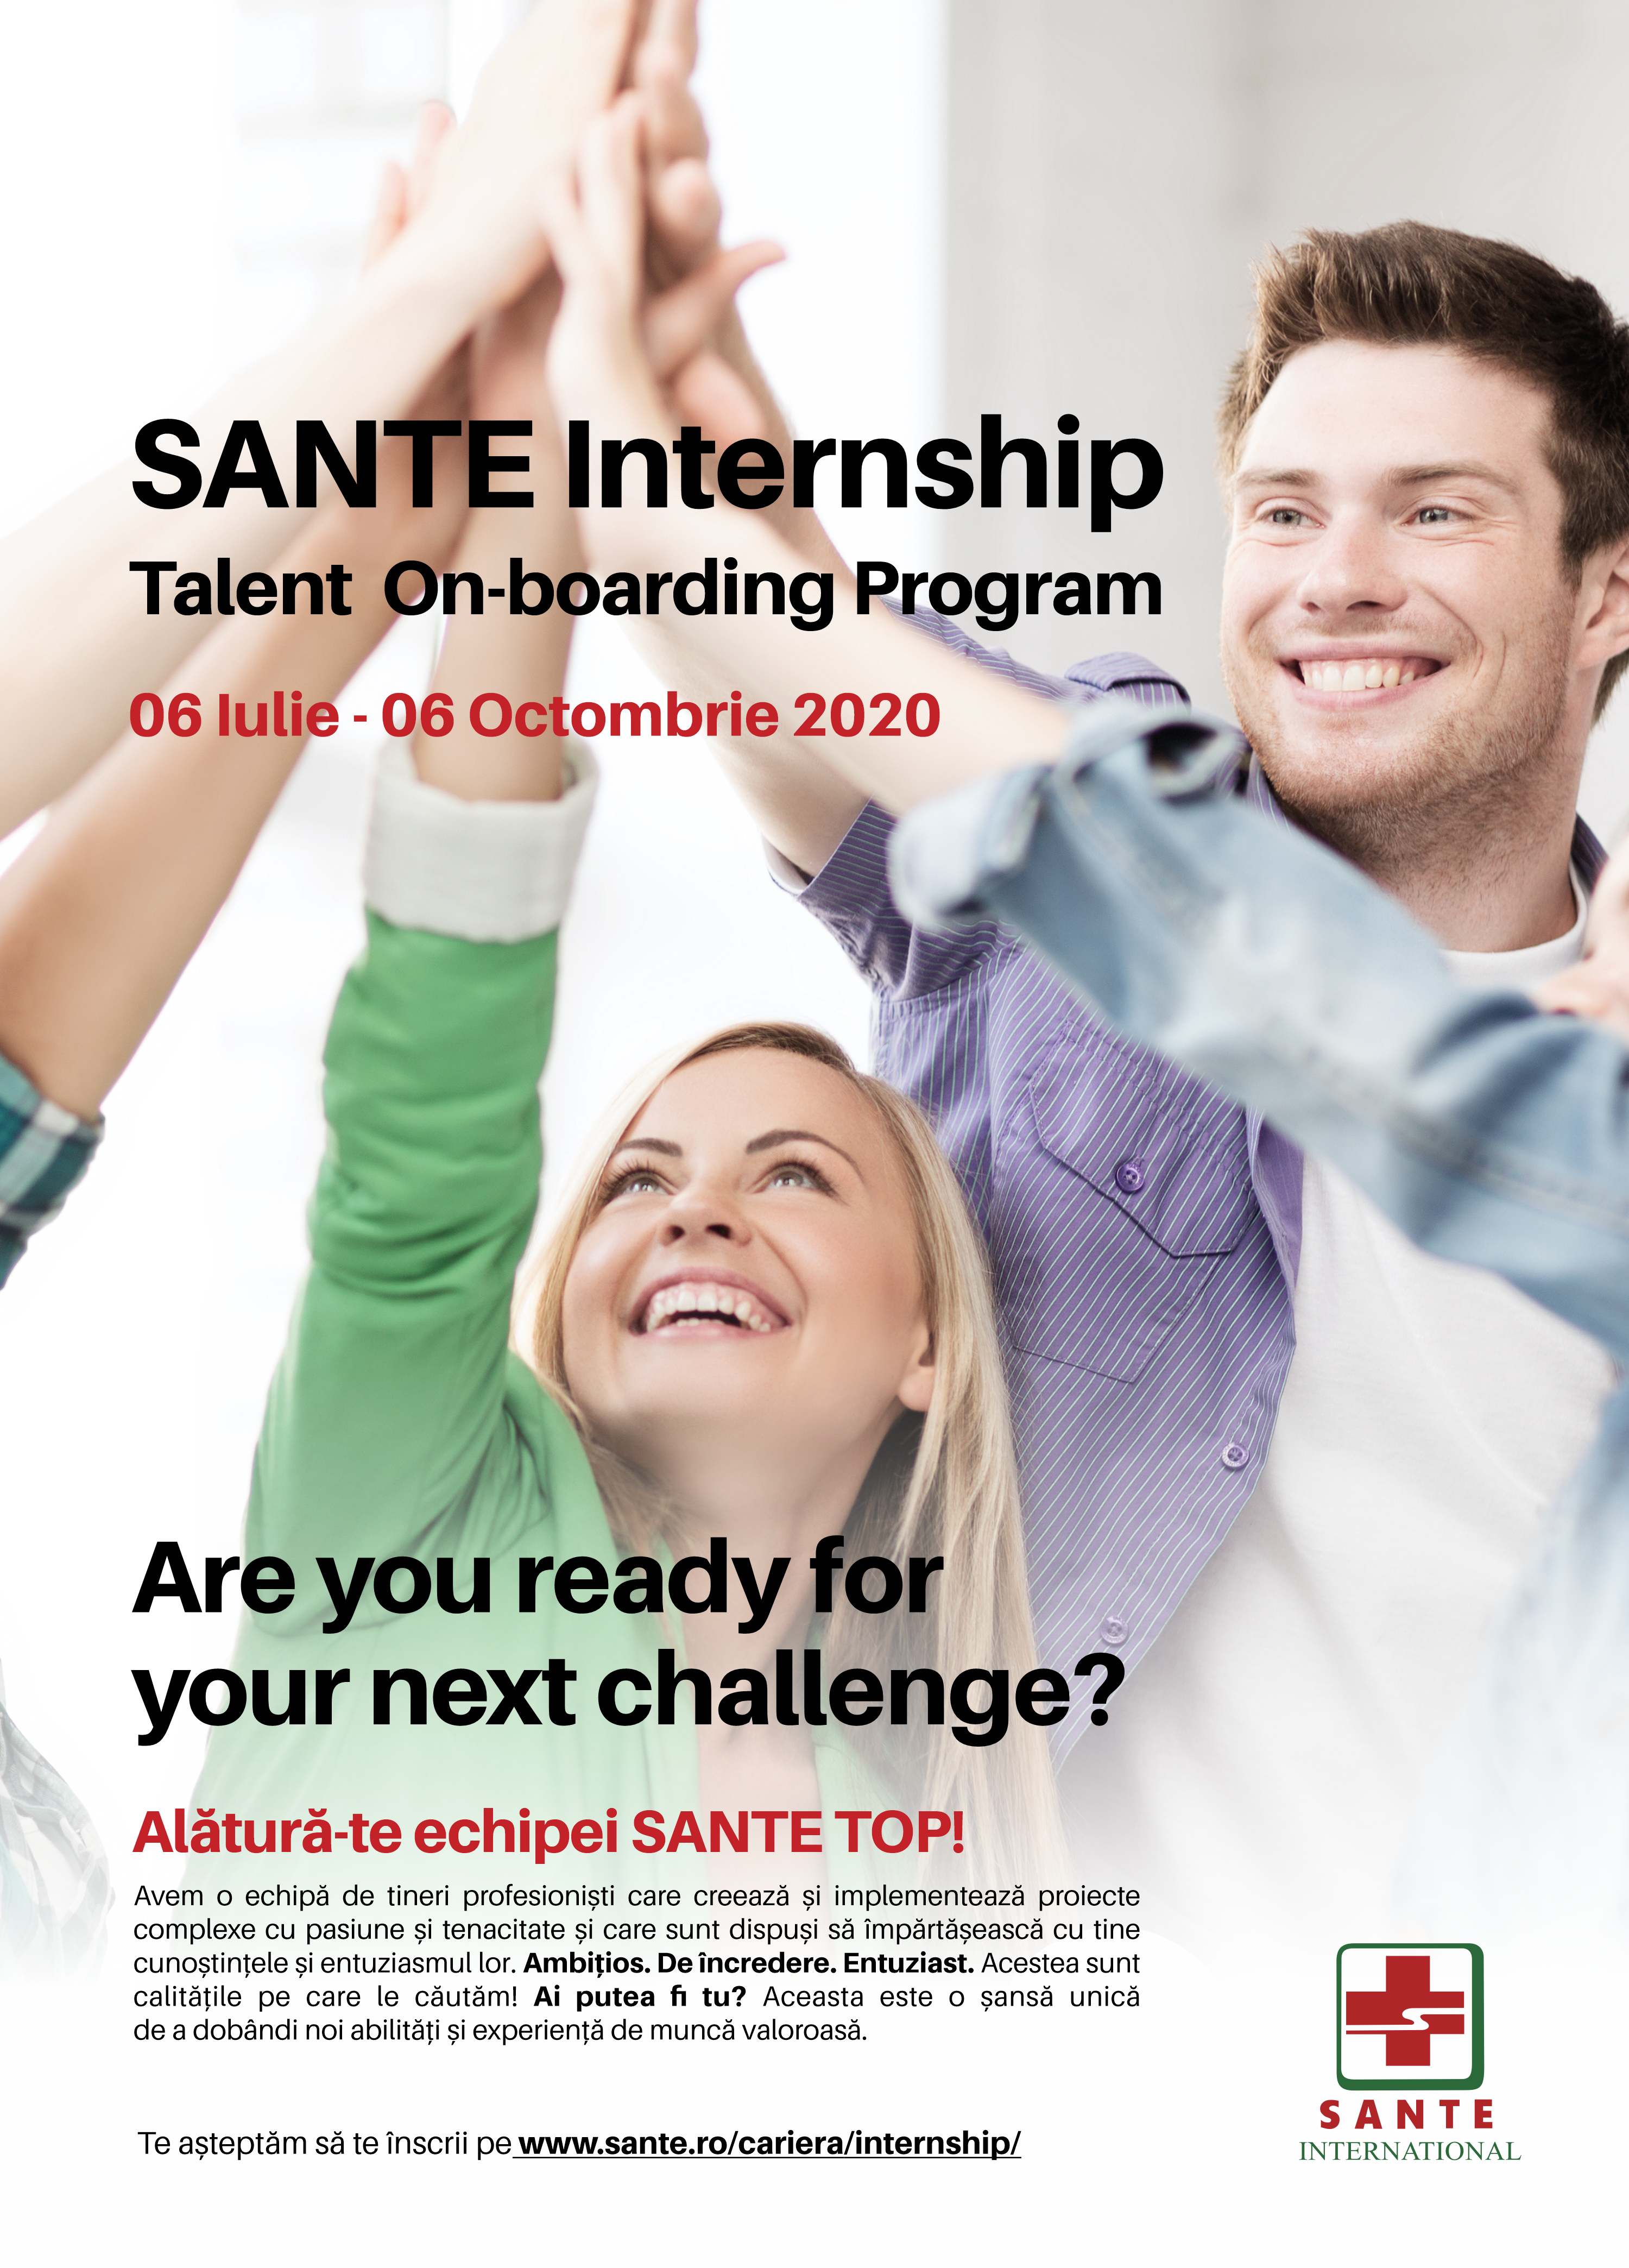 Program Internship Sante International